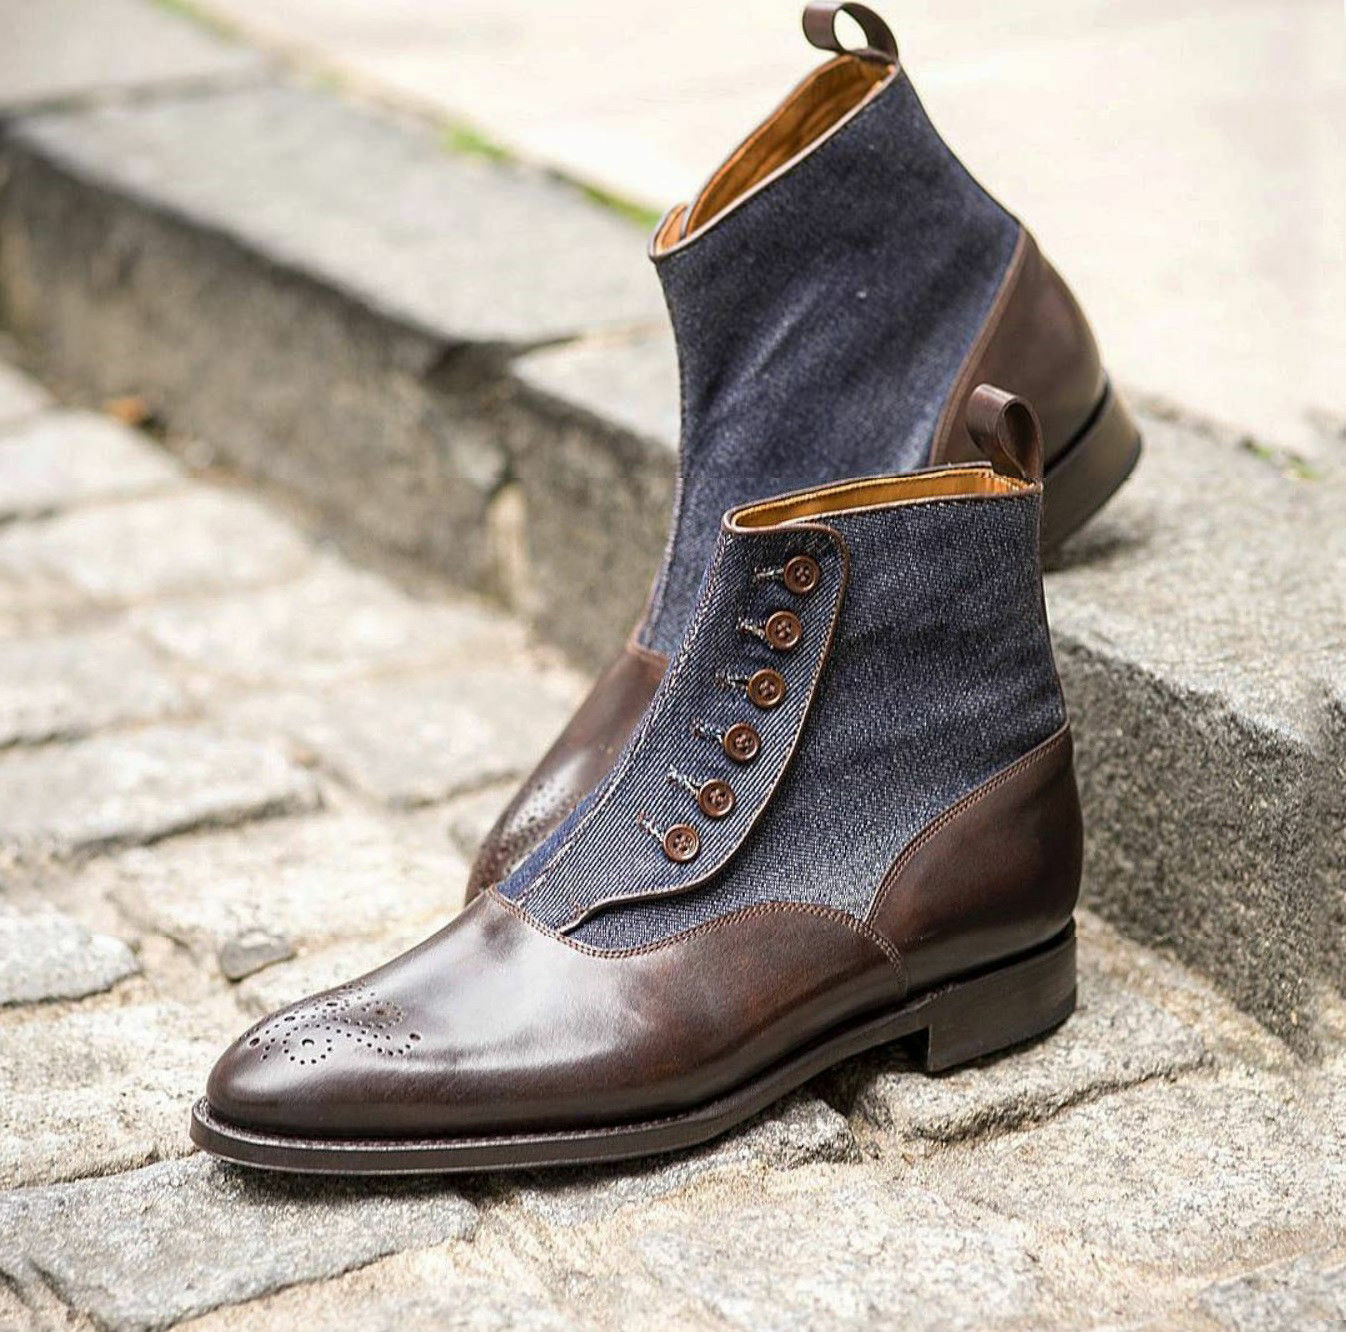 MEN NEW HANDMADE GENIUNE DENIM LEATHER SHOES BROGUE BROWN BUTTONED FORMAL BOOTS